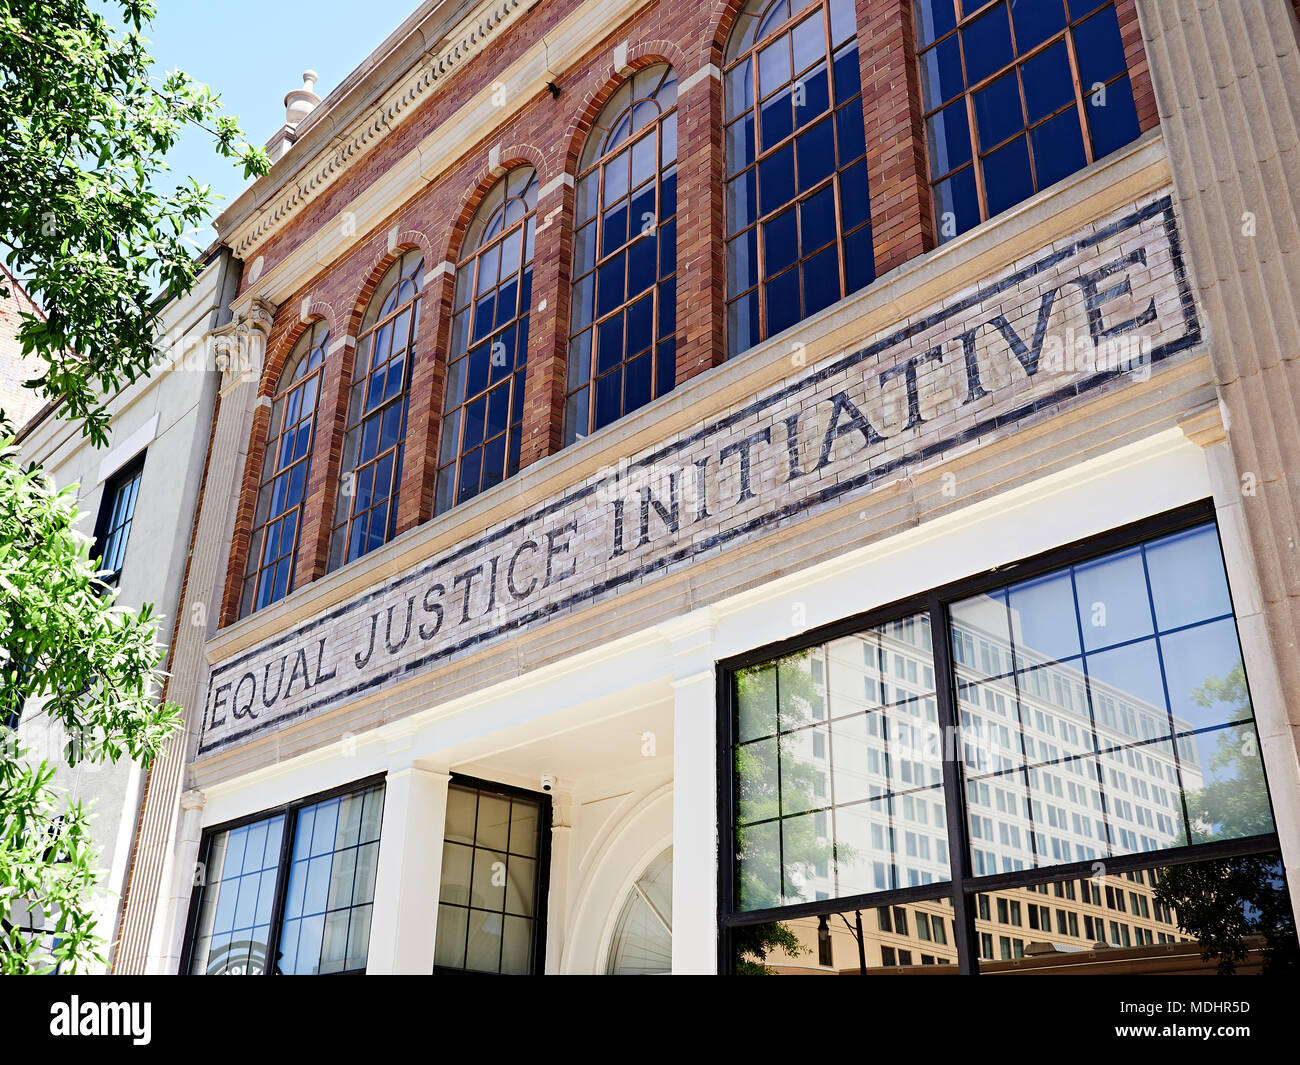 Equal Justice Initiative sign above the exterior entrance to the building and offices in Montgomery Alabama, USA. Stock Photo